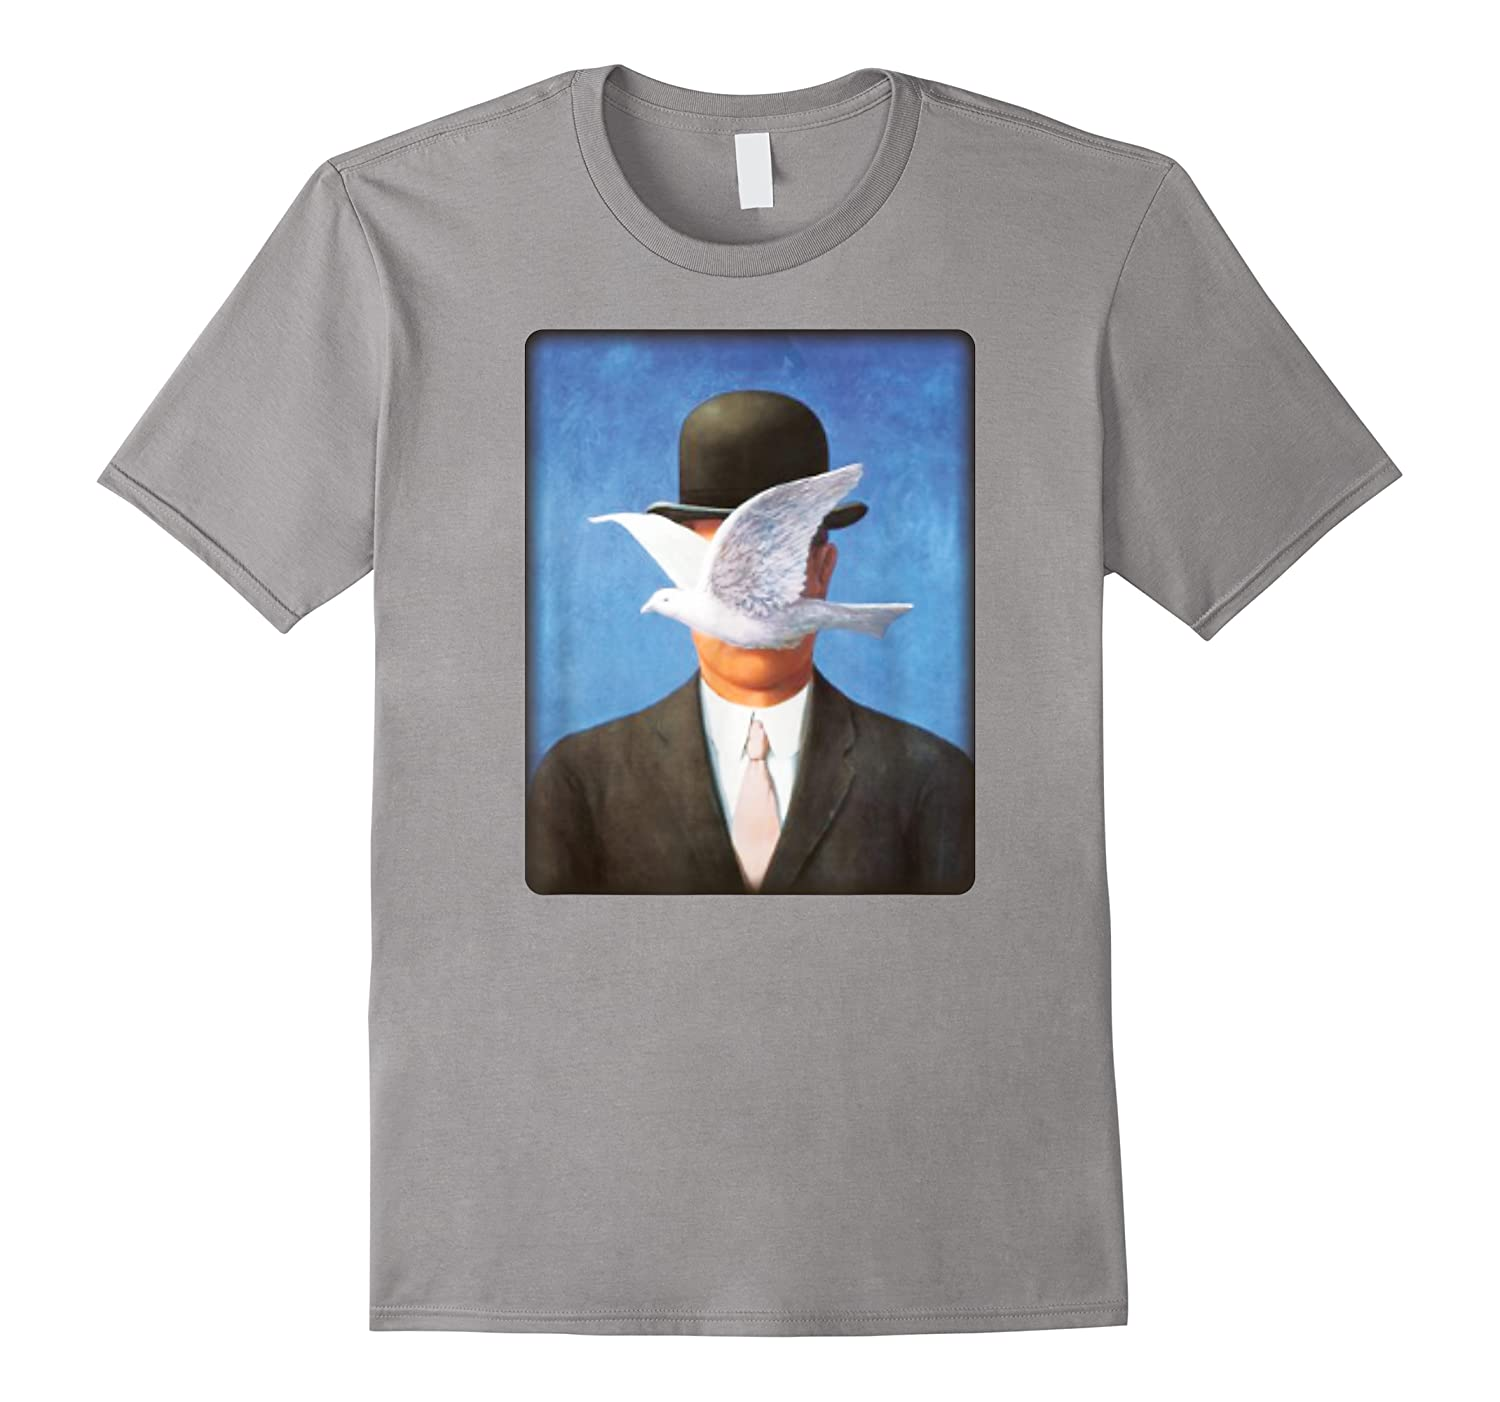 Son Of Man By Rene Magritte With Flying Dove Blocking Face Shirts